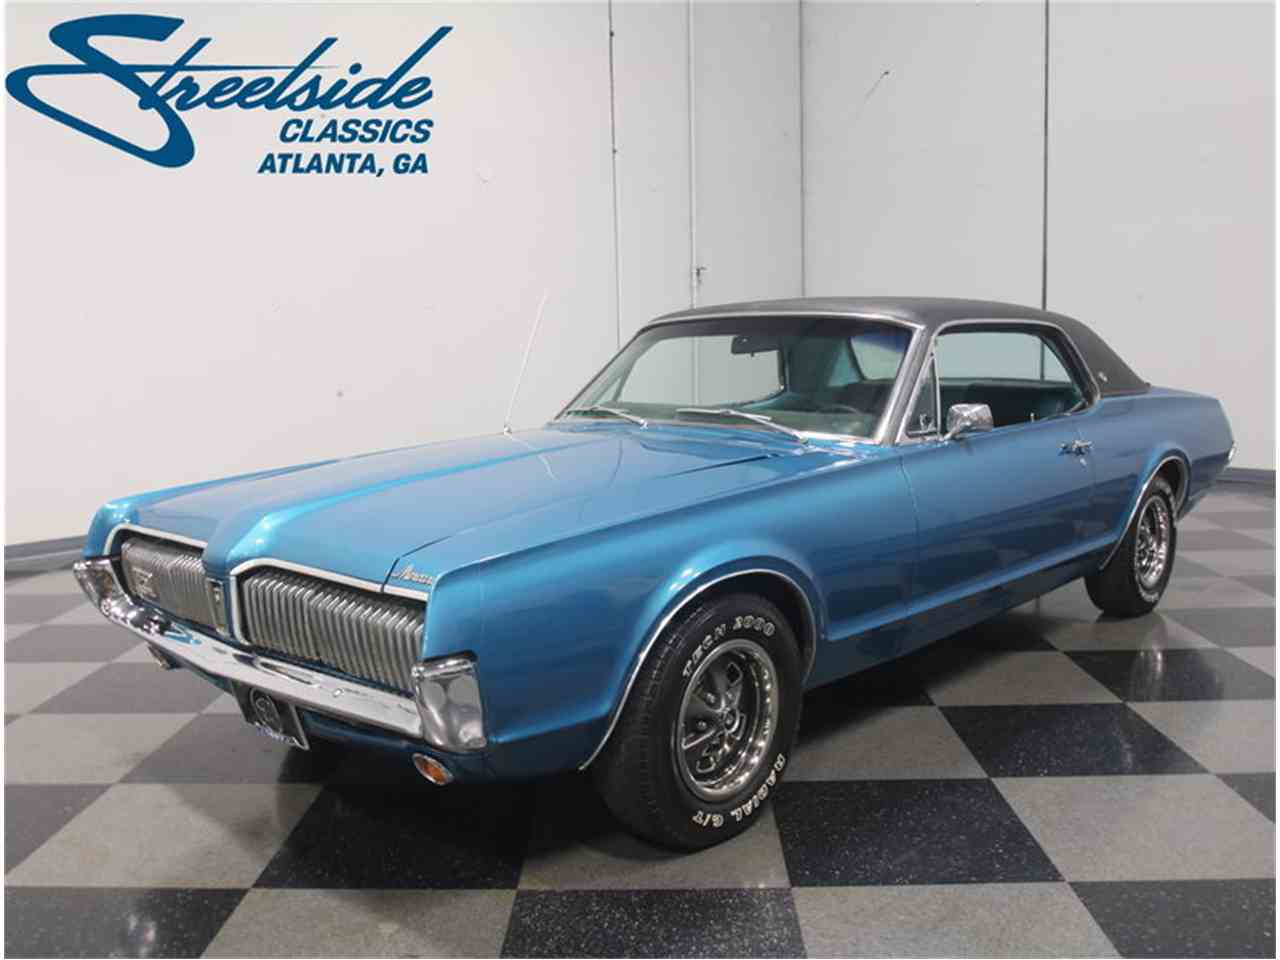 1972 mercury montego n code 429 restomod motorcycle custom - 1967 Mercury Cougar 1039123